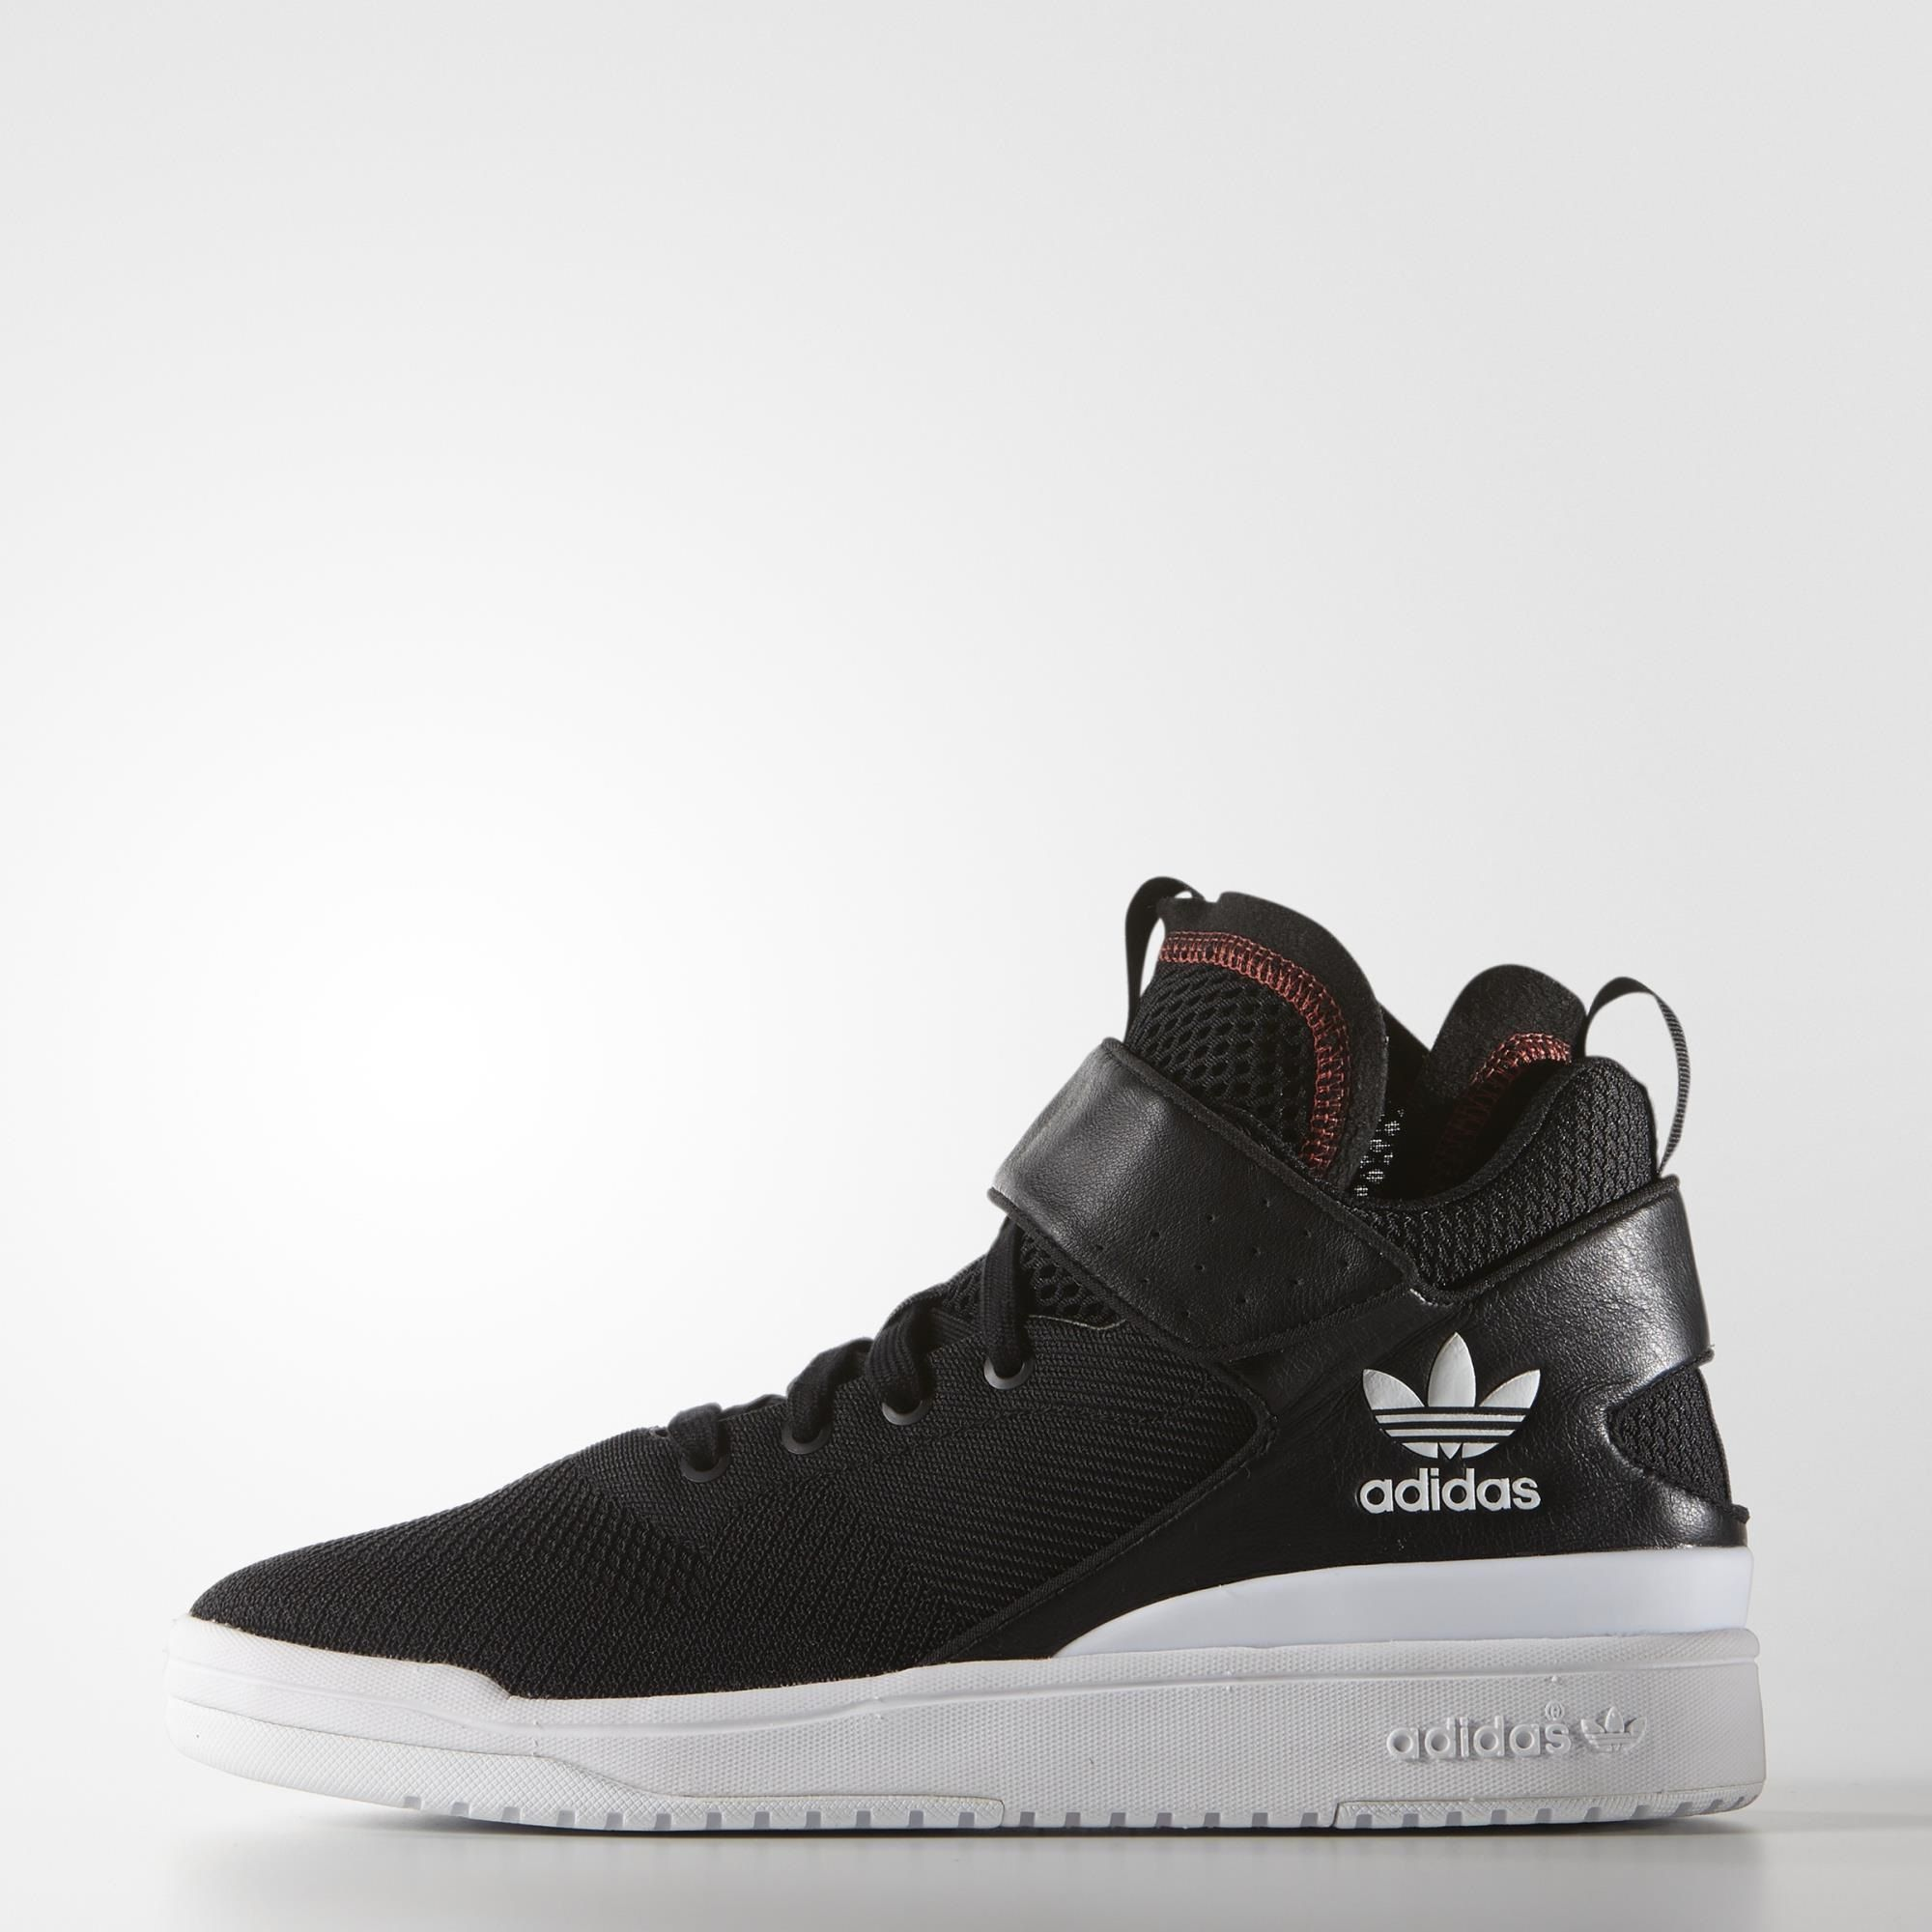 363c5b875345 Retaining the game-changing X-ankle strap, this updated version of the Forum